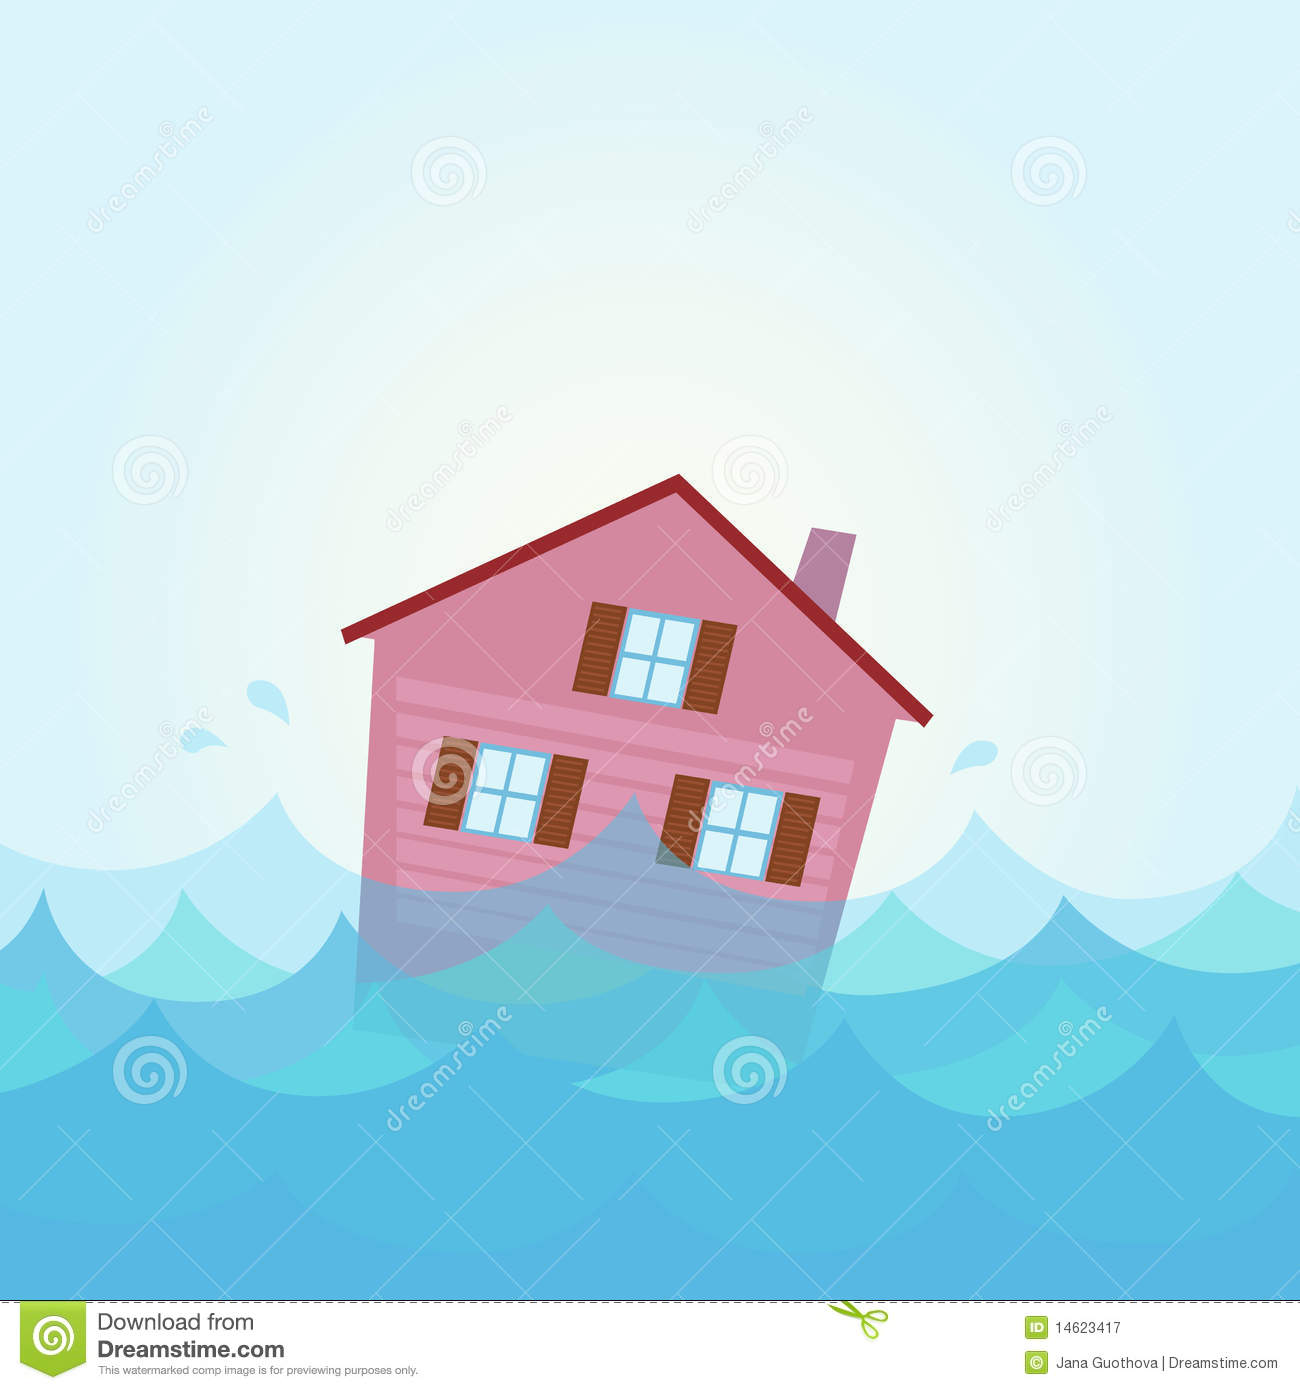 building exterior design free with Royalty Free Stock Photography House Flood Home Flooding Under Water Image14623417 on Trends Cabi  Paint Colors furthermore 7b17g6 moreover Modern European Office Building Wall Texture Image 4685433 moreover Grungy Brick Background Image 1784116 further Minimalism Art Architecture Design.